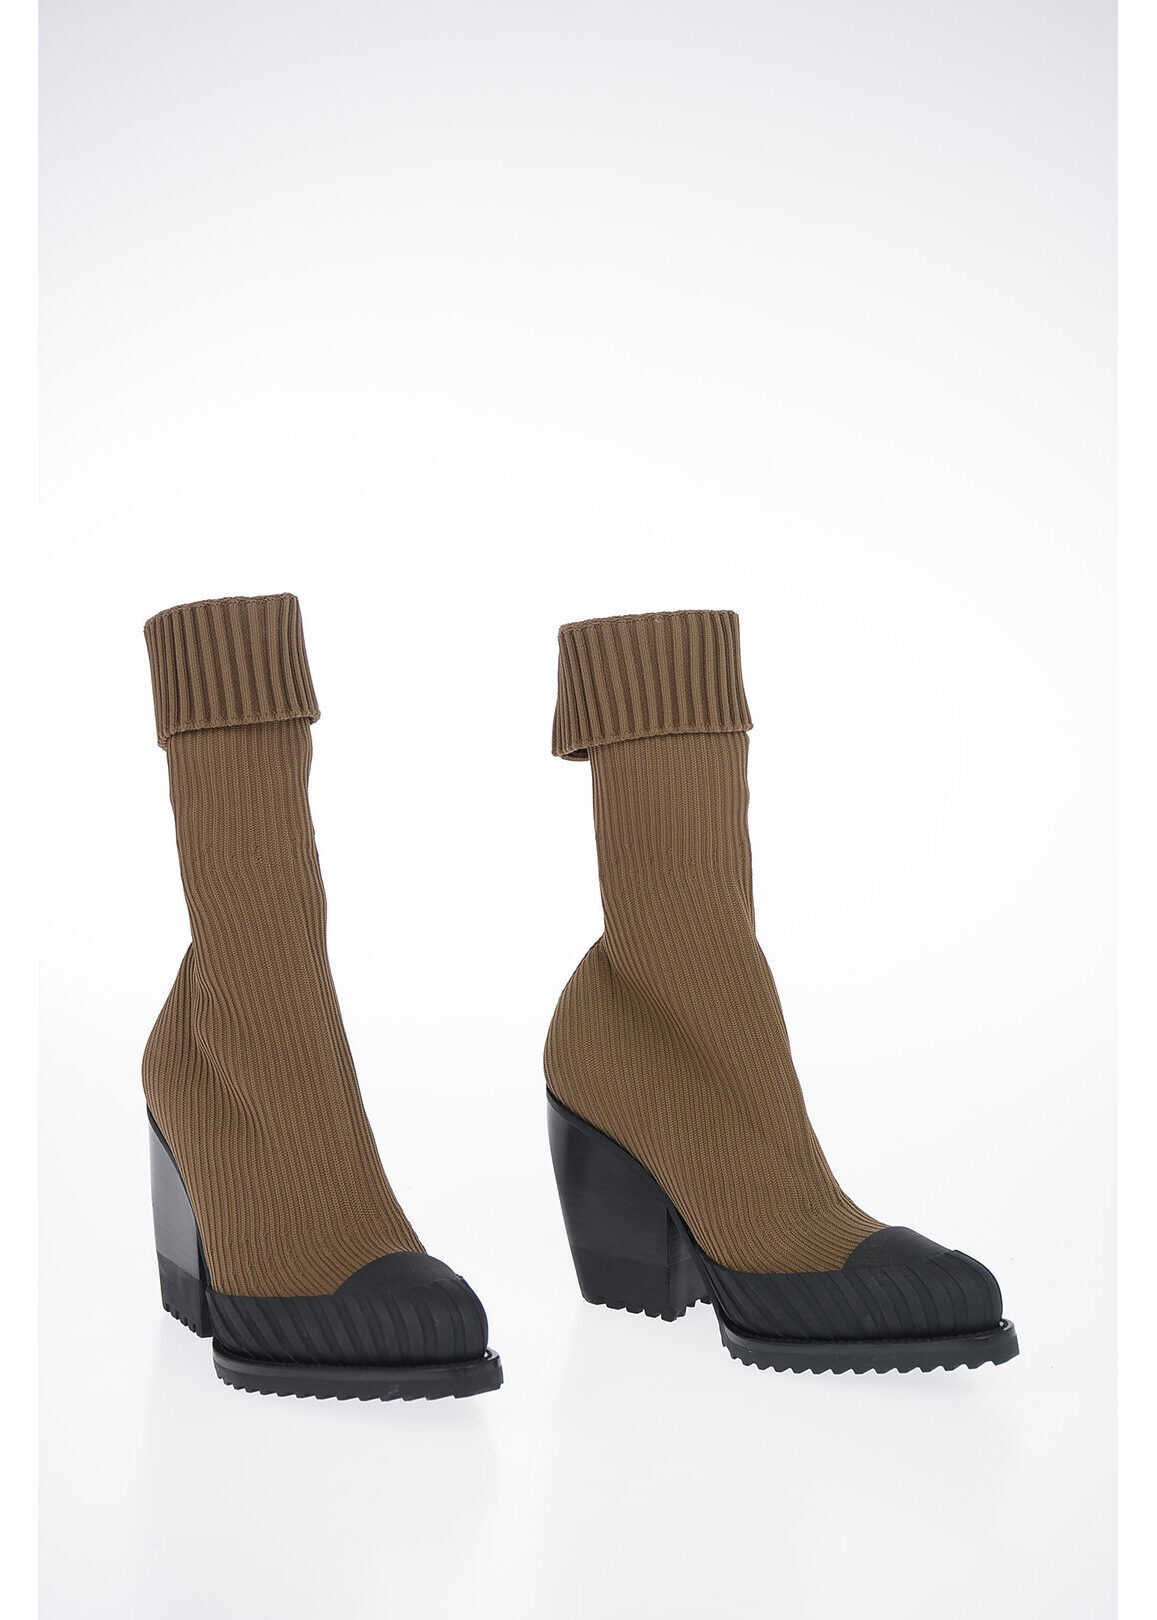 Chloe 9cm Fabric Socks Ankle Boots BROWN